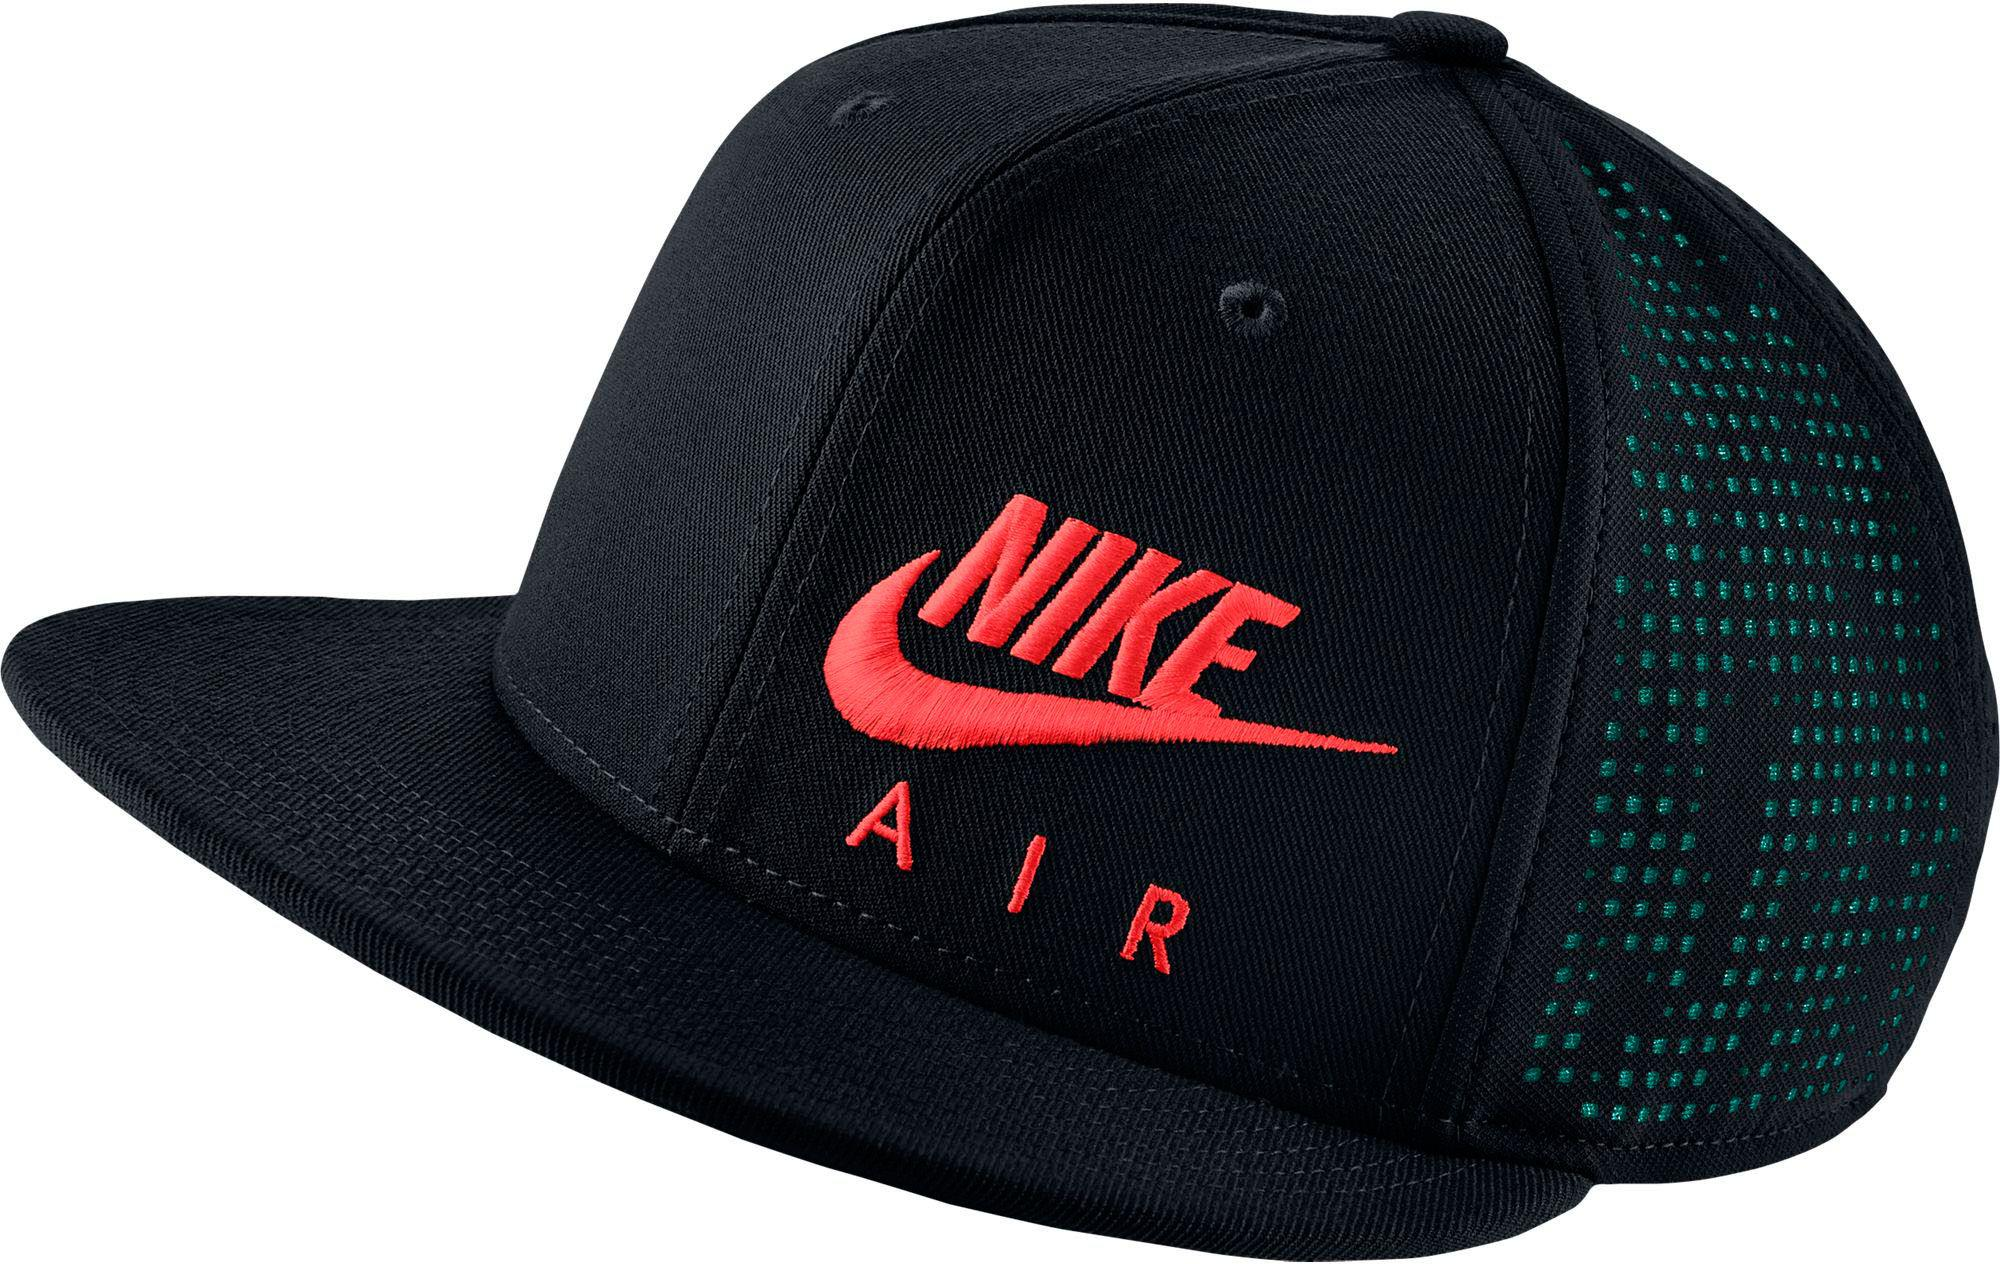 a3c45a79 ... usa lyst nike air hybrid true adjustable snapback hat in black for men  aa1cf 0368c